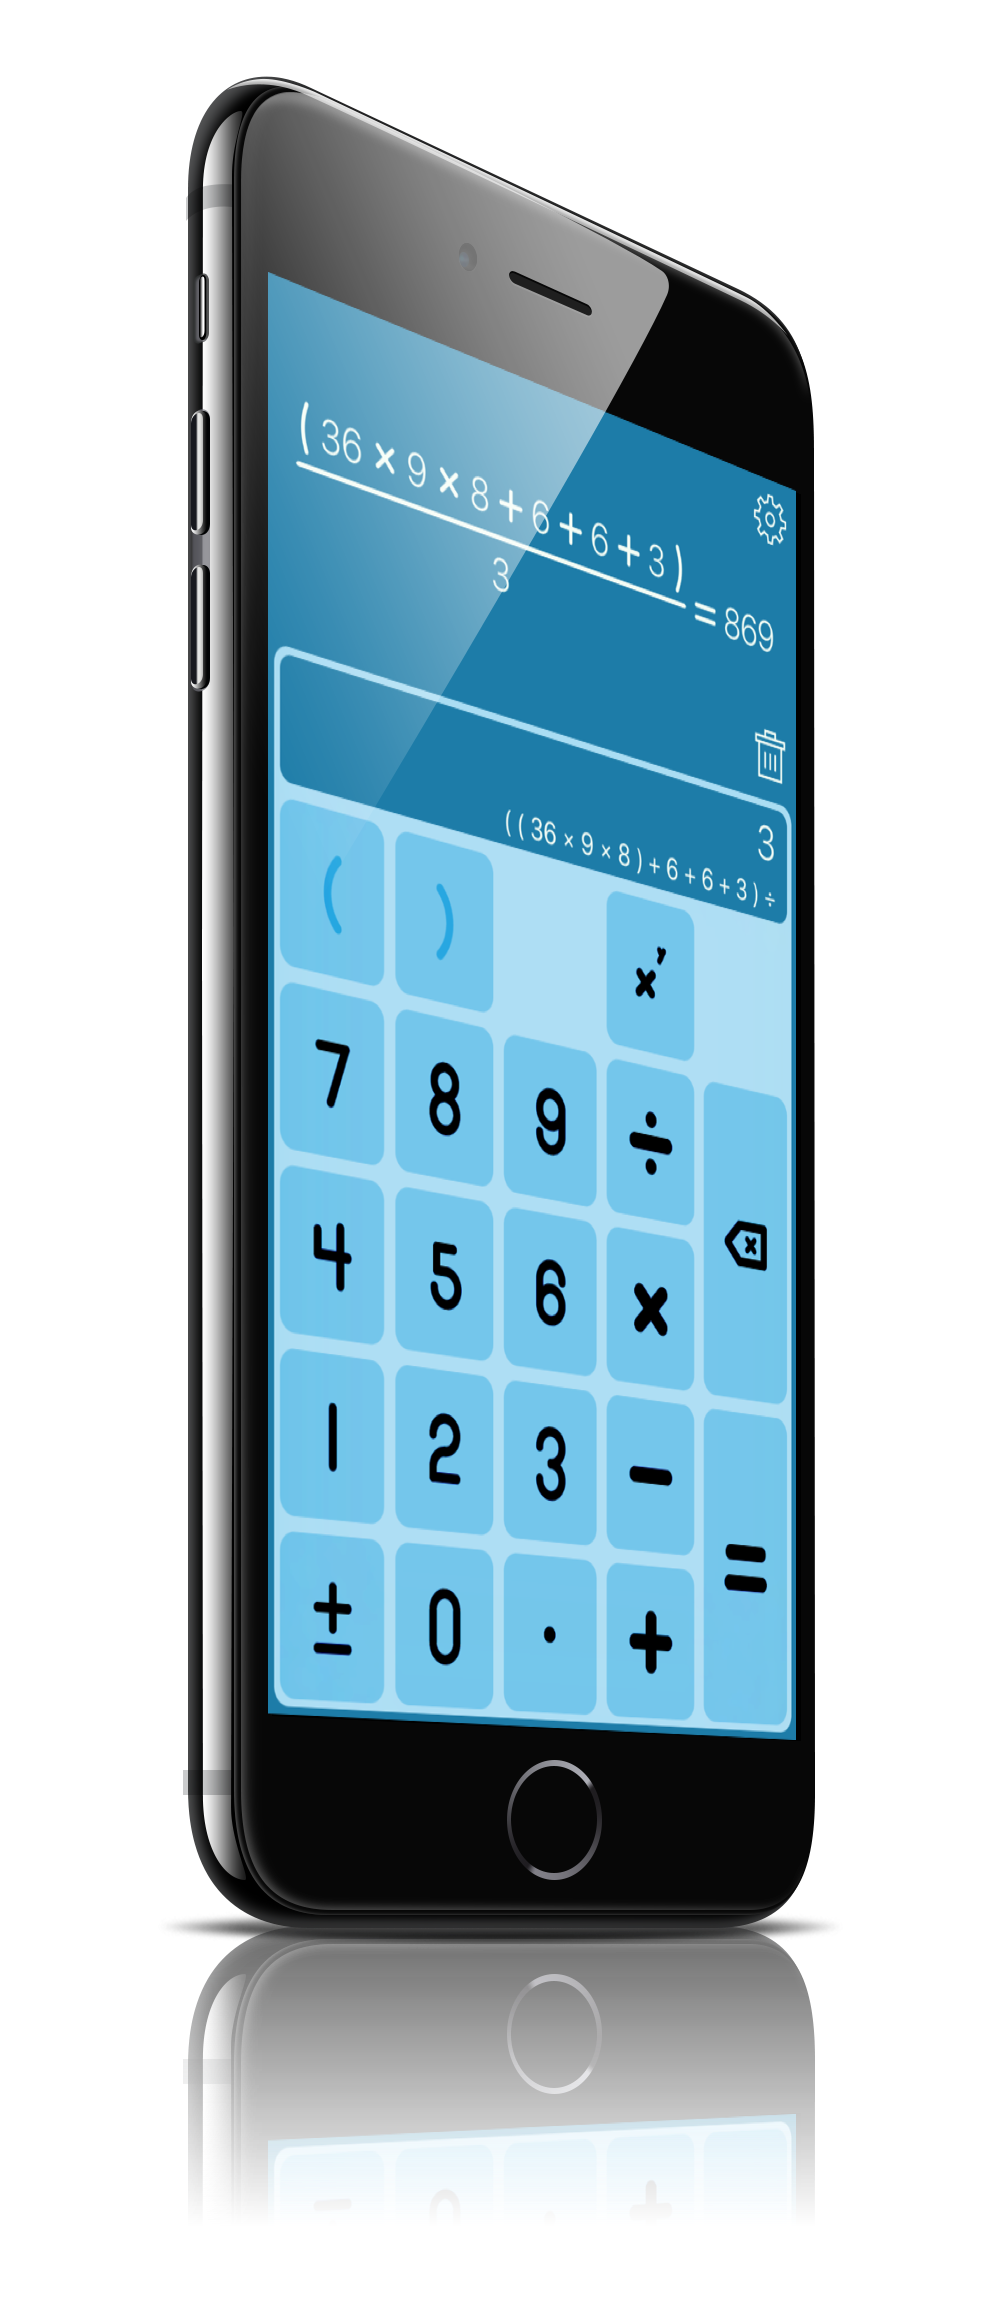 StackCalc for iPhone Screenshot